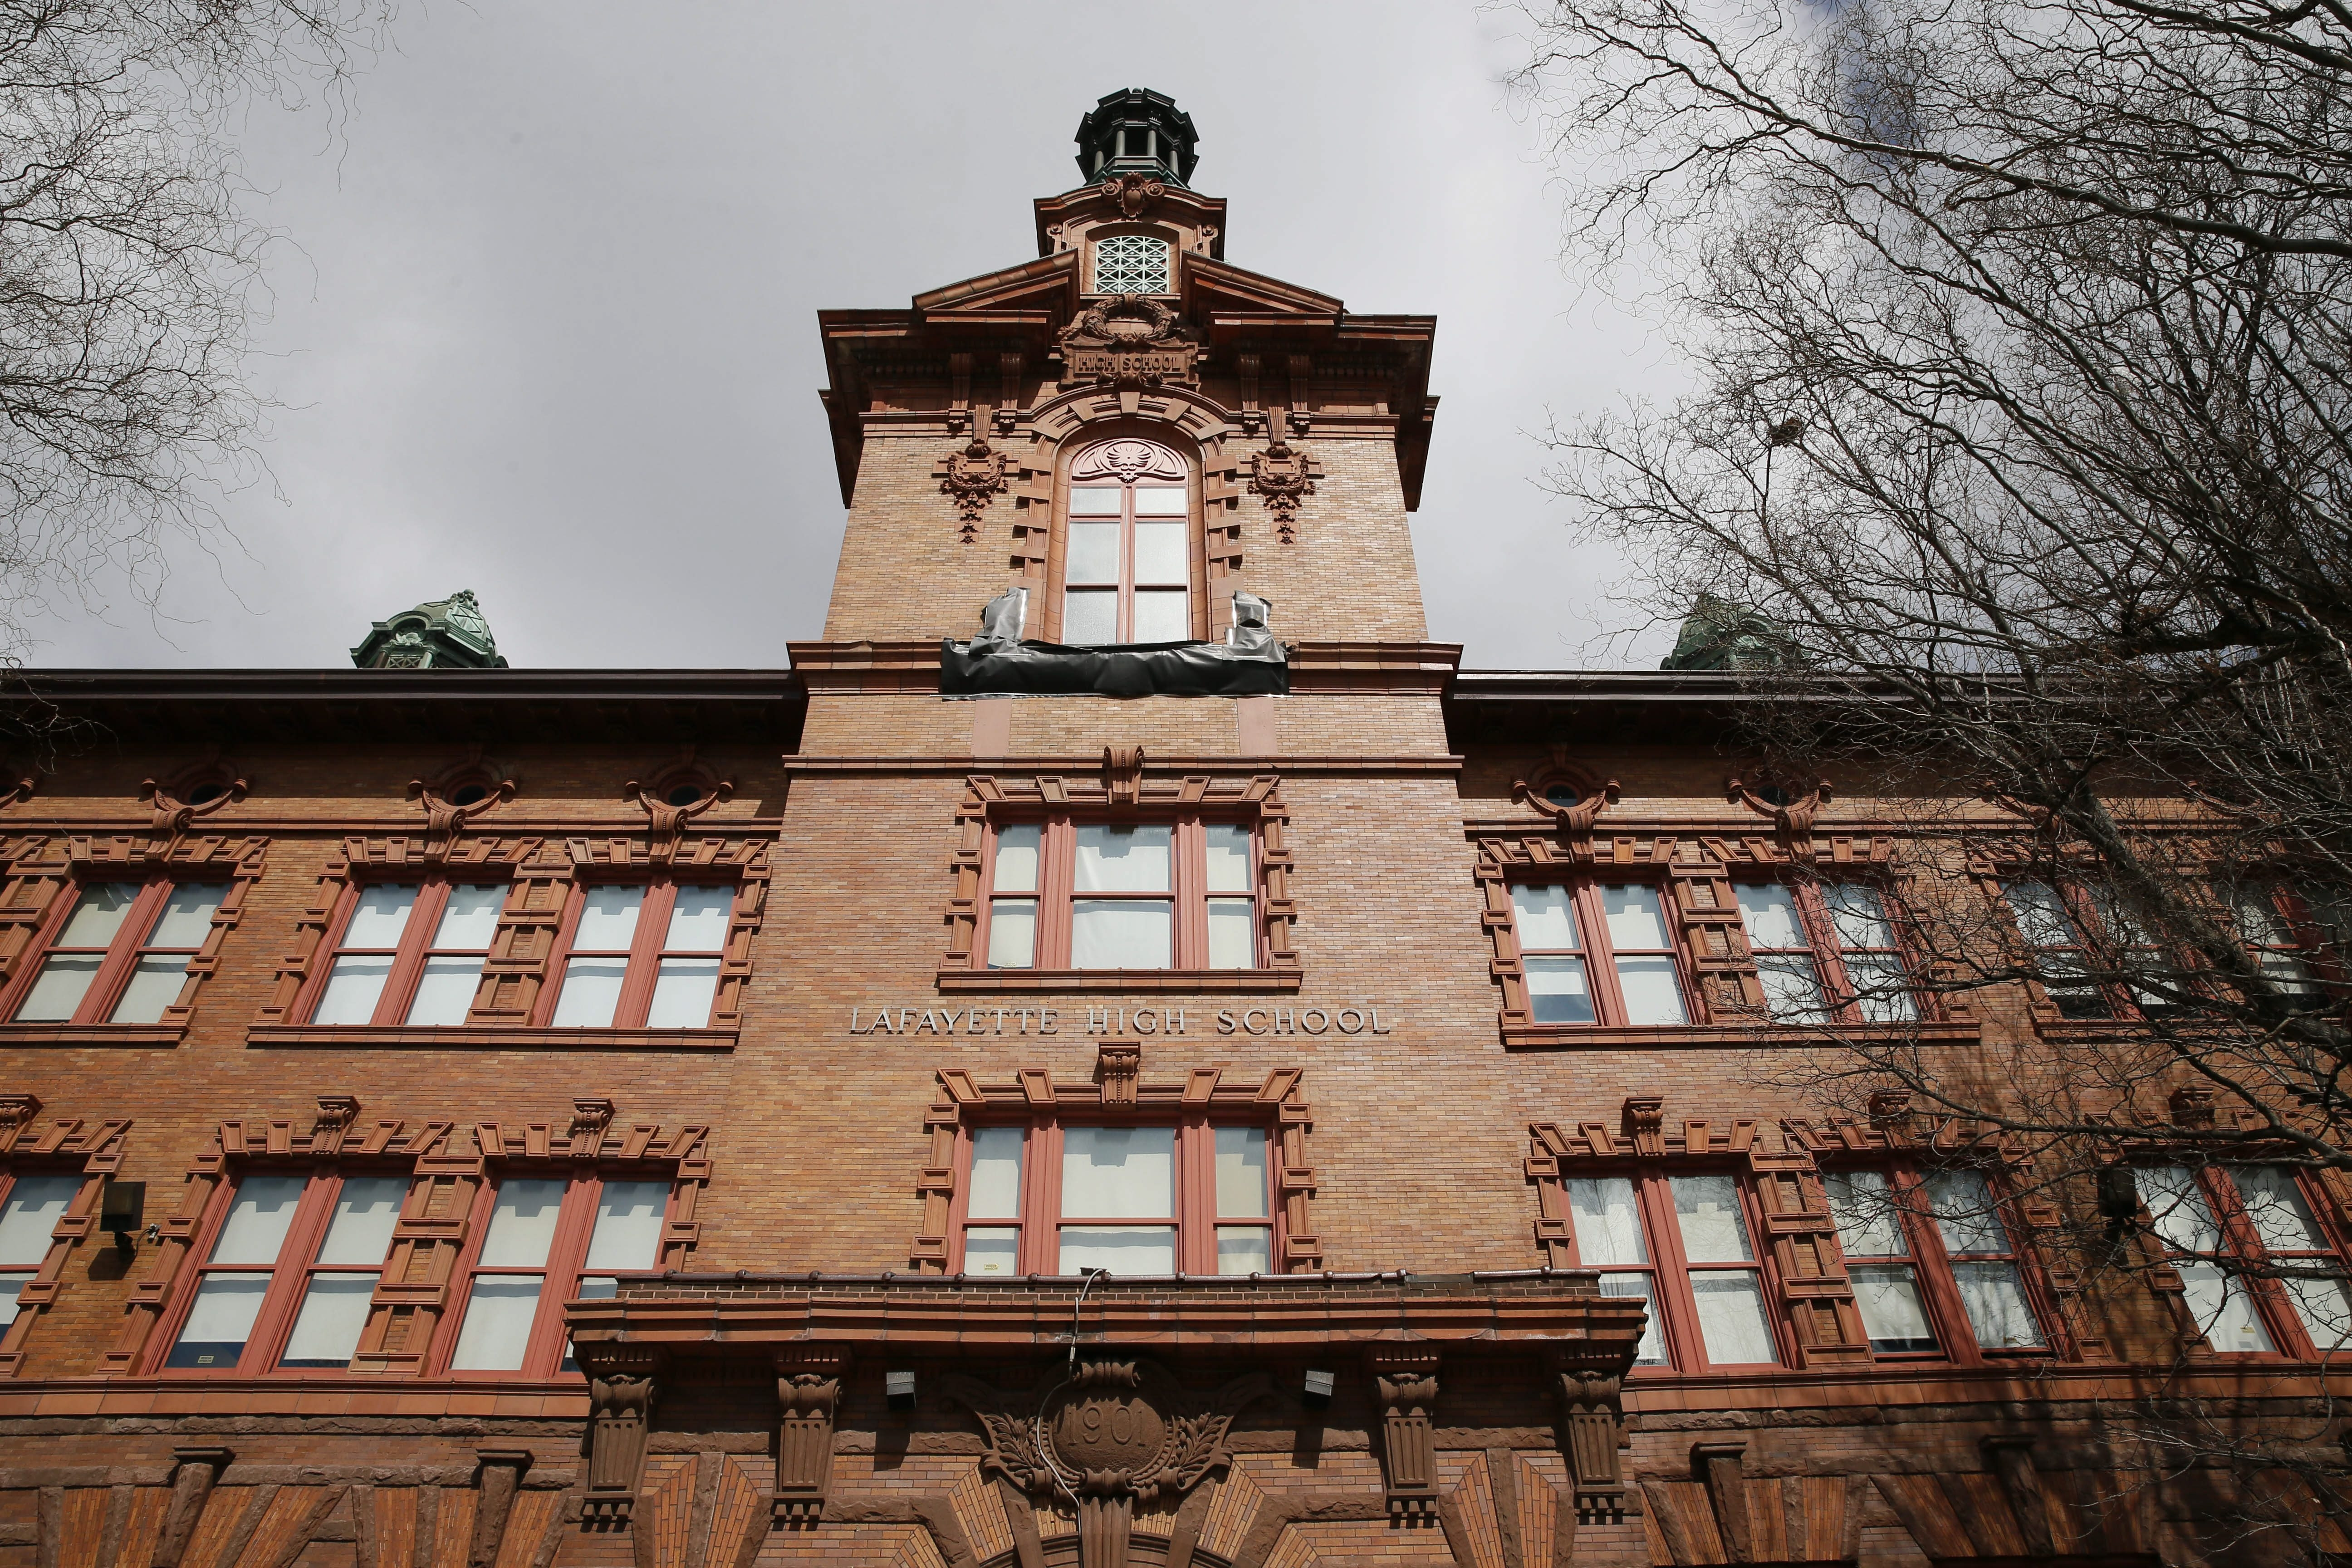 Citing poor student performance, the state has demanded that the Buffalo schools come up with plans to transform Lafayette (pictured), East and Bennett high schools, as well as at Martin Luther King Multicultural Institute, an elementary school. (Derek Gee/Buffalo News)